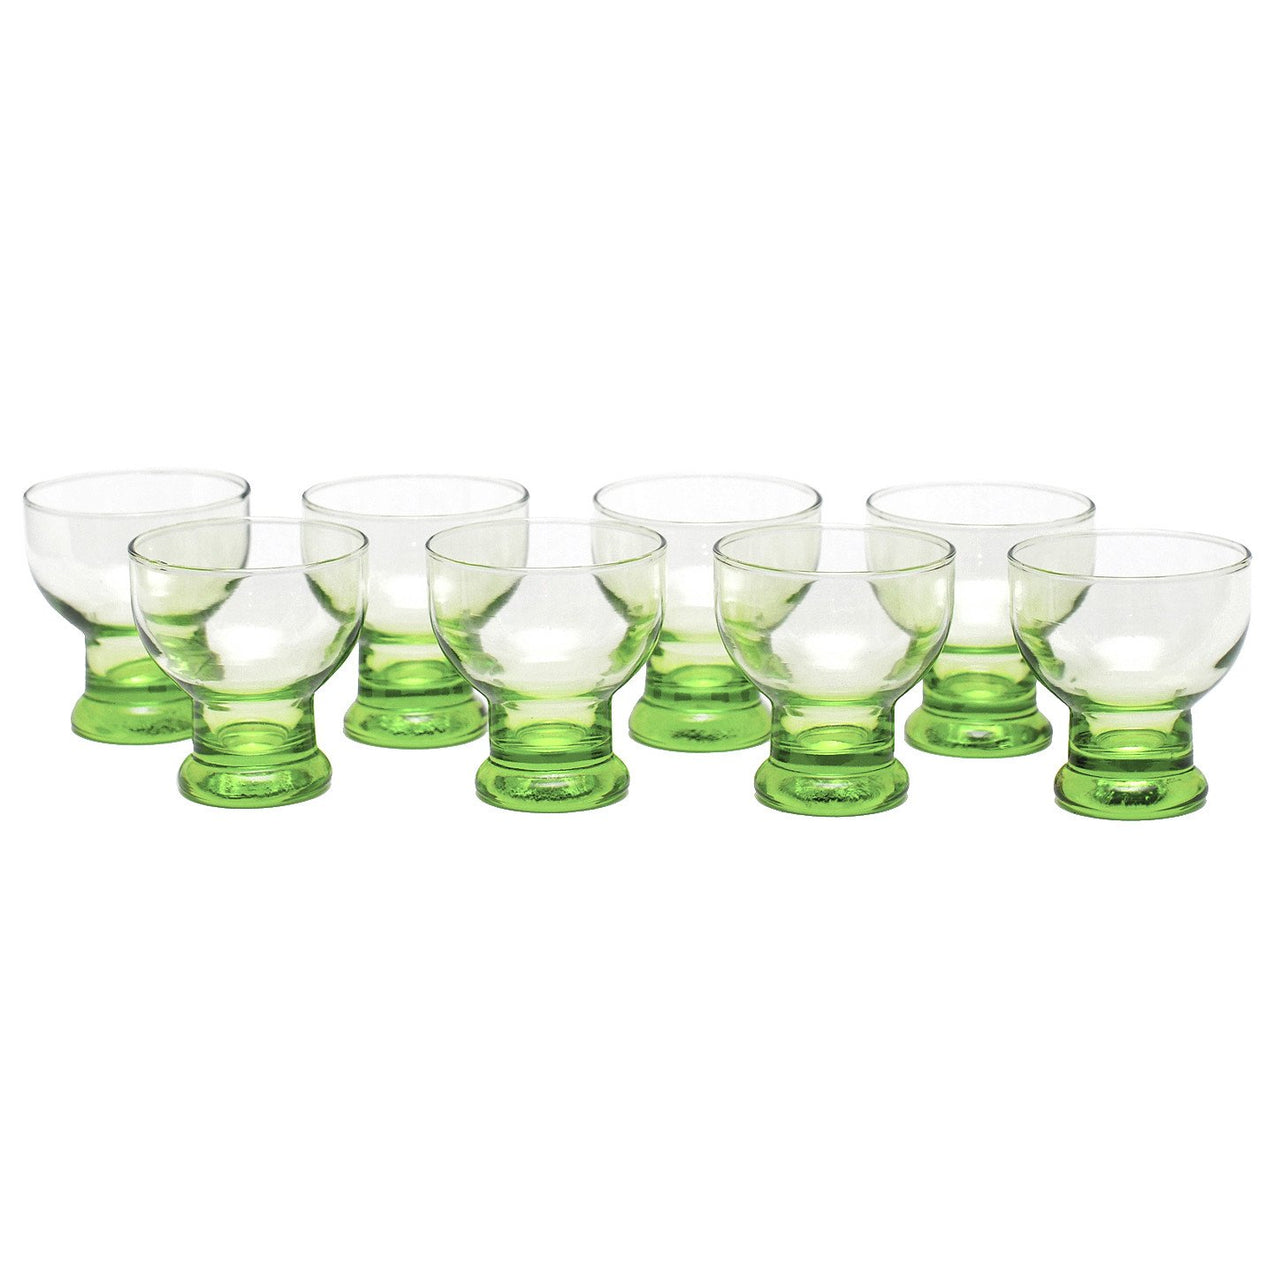 Vintage Green Footed Cocktail Glasses, The Hour Shop Glassware